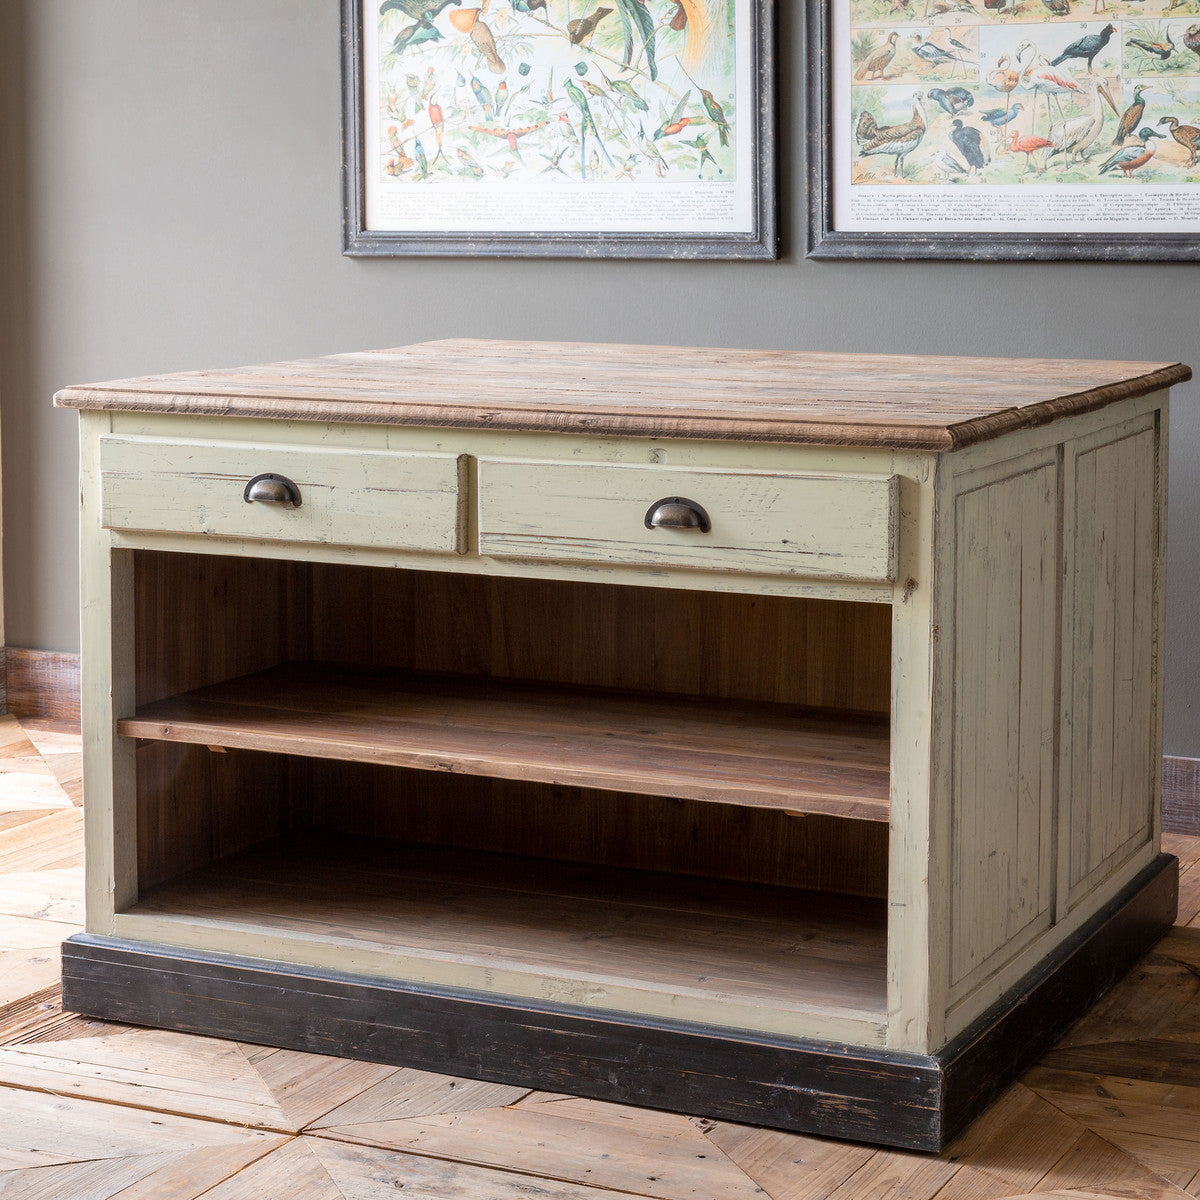 Two-Sided Worktable With Drawers